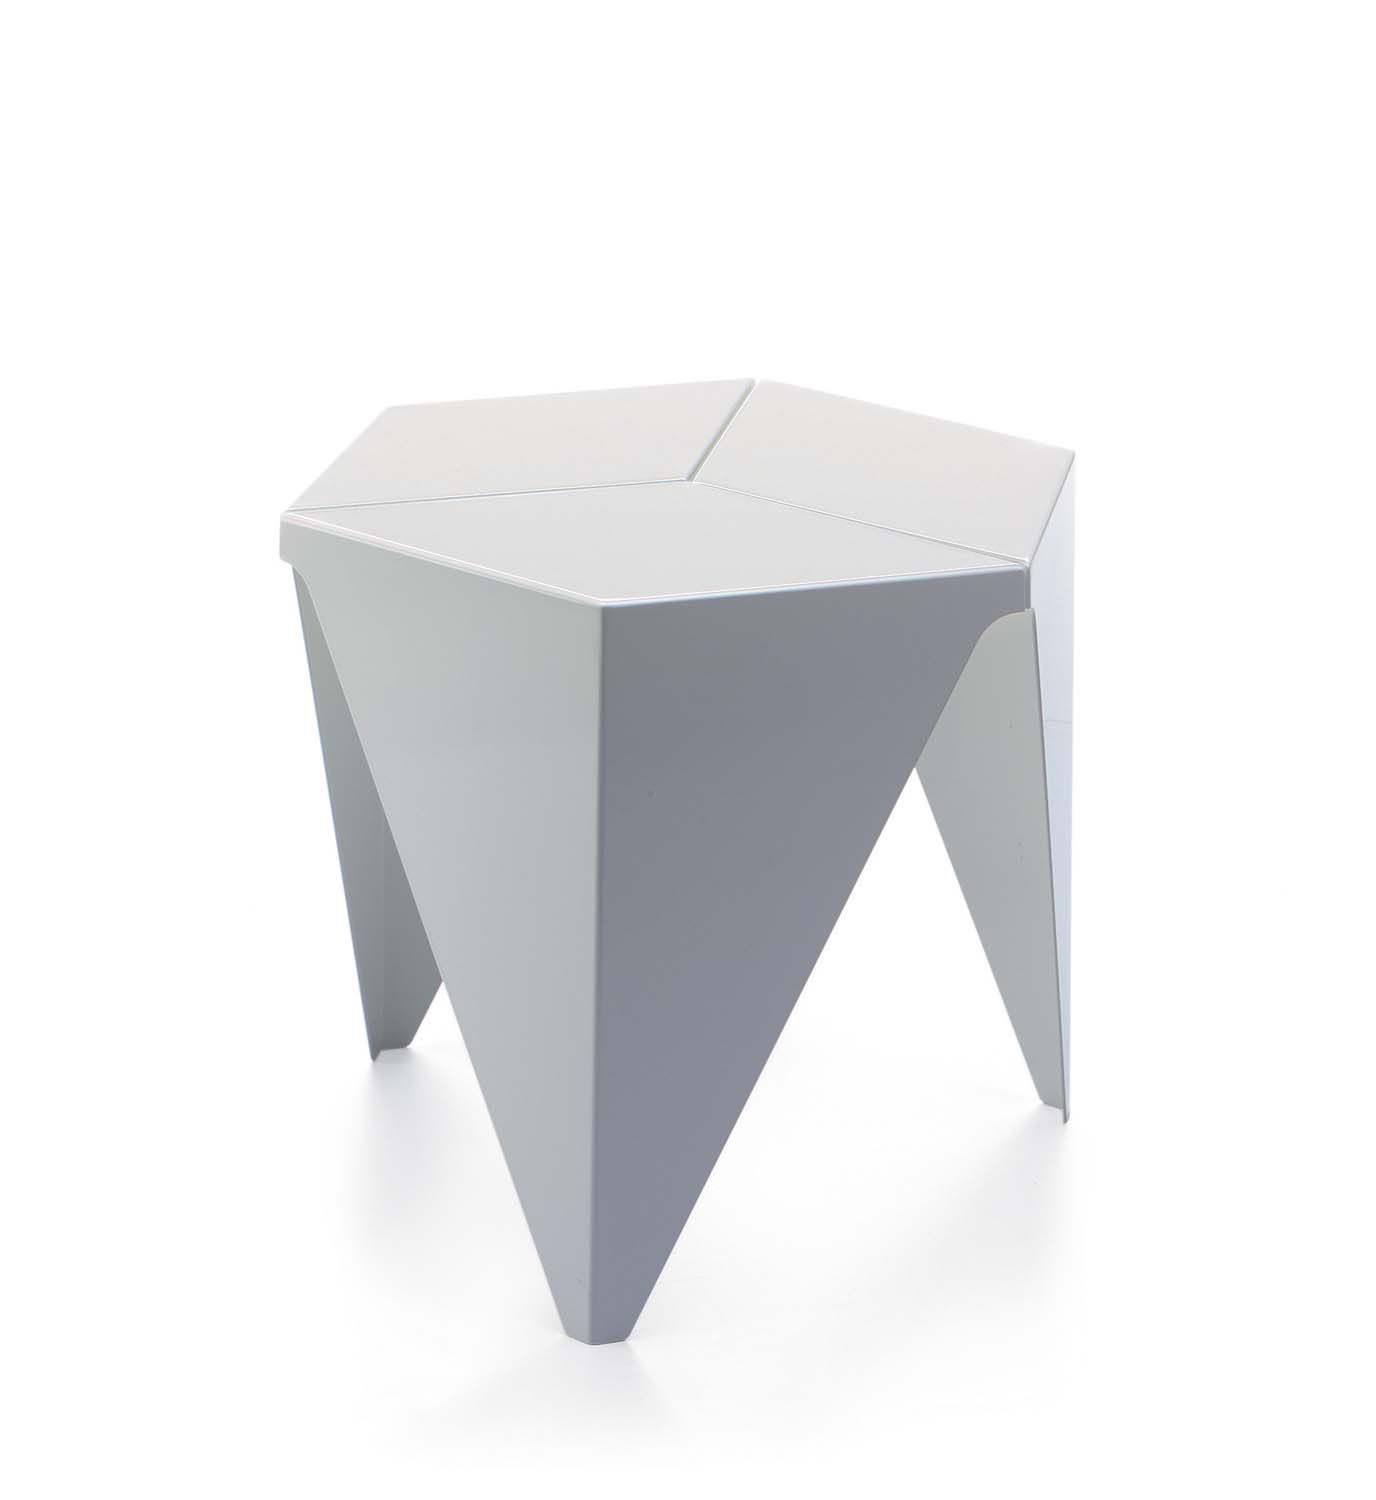 Table d appoint METAL SIDE TABLE OUTDOOR GM Noir  Vitra